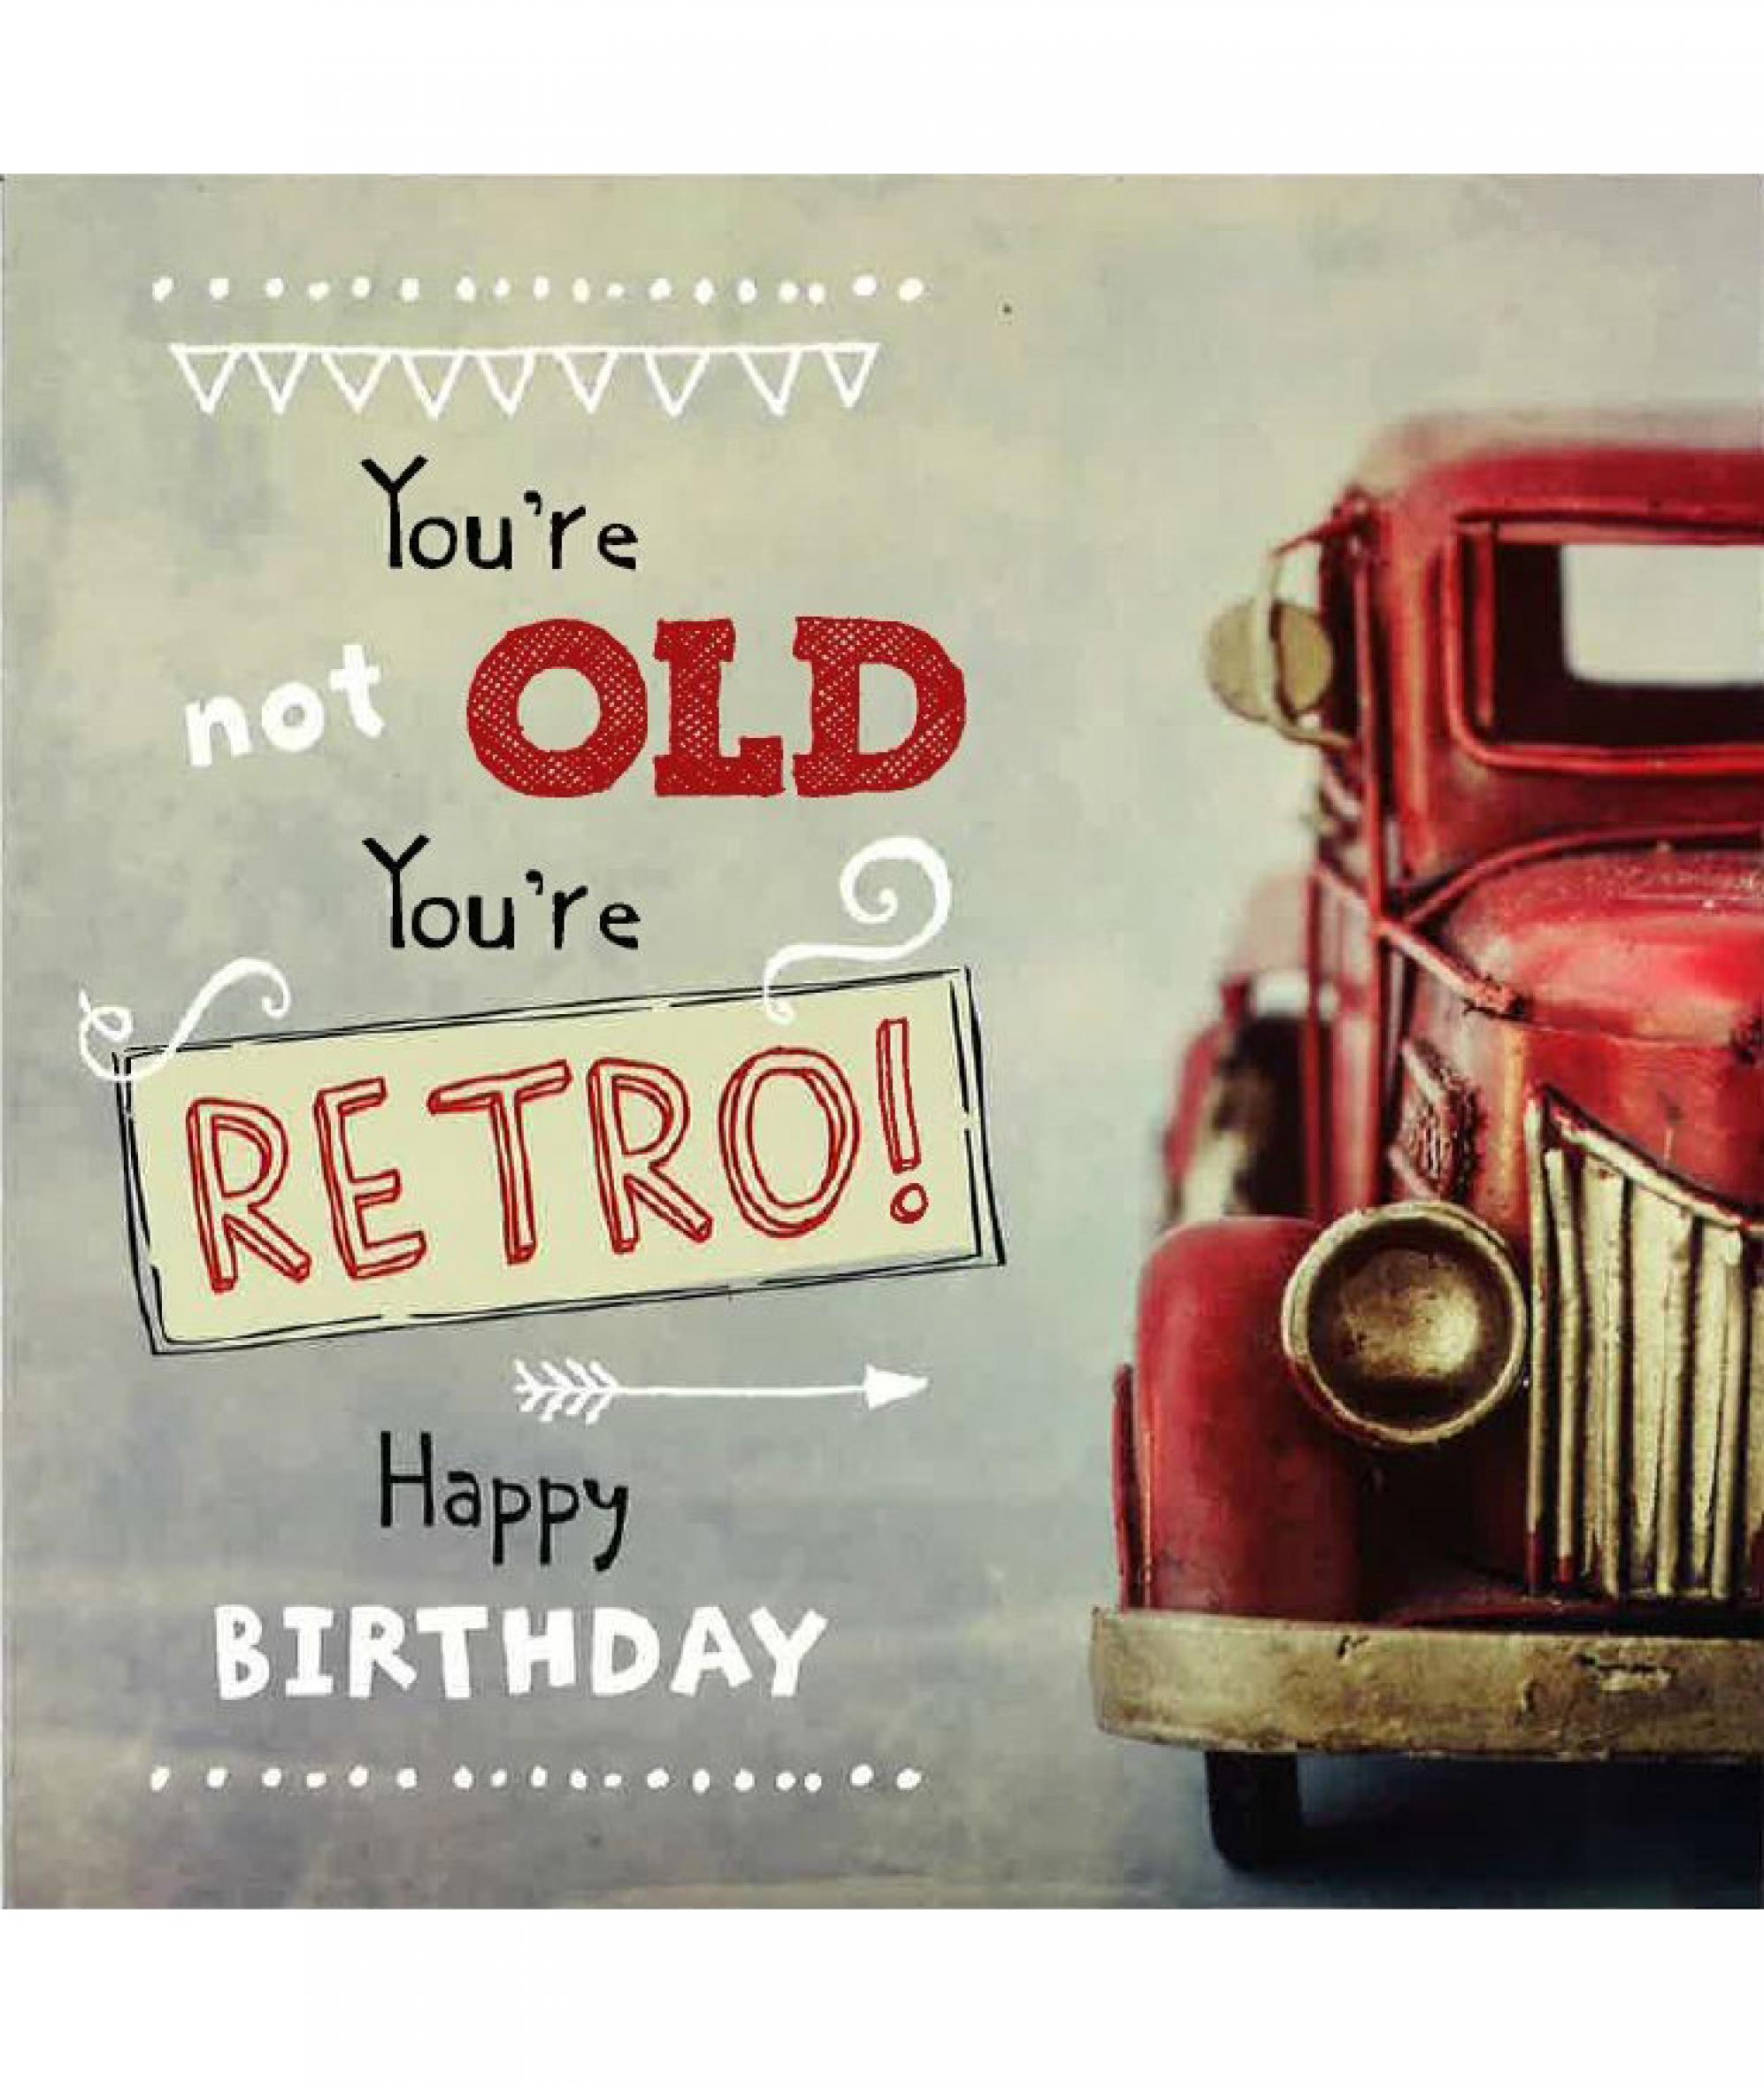 You're Not Old You're Retro Happy Bithday Card